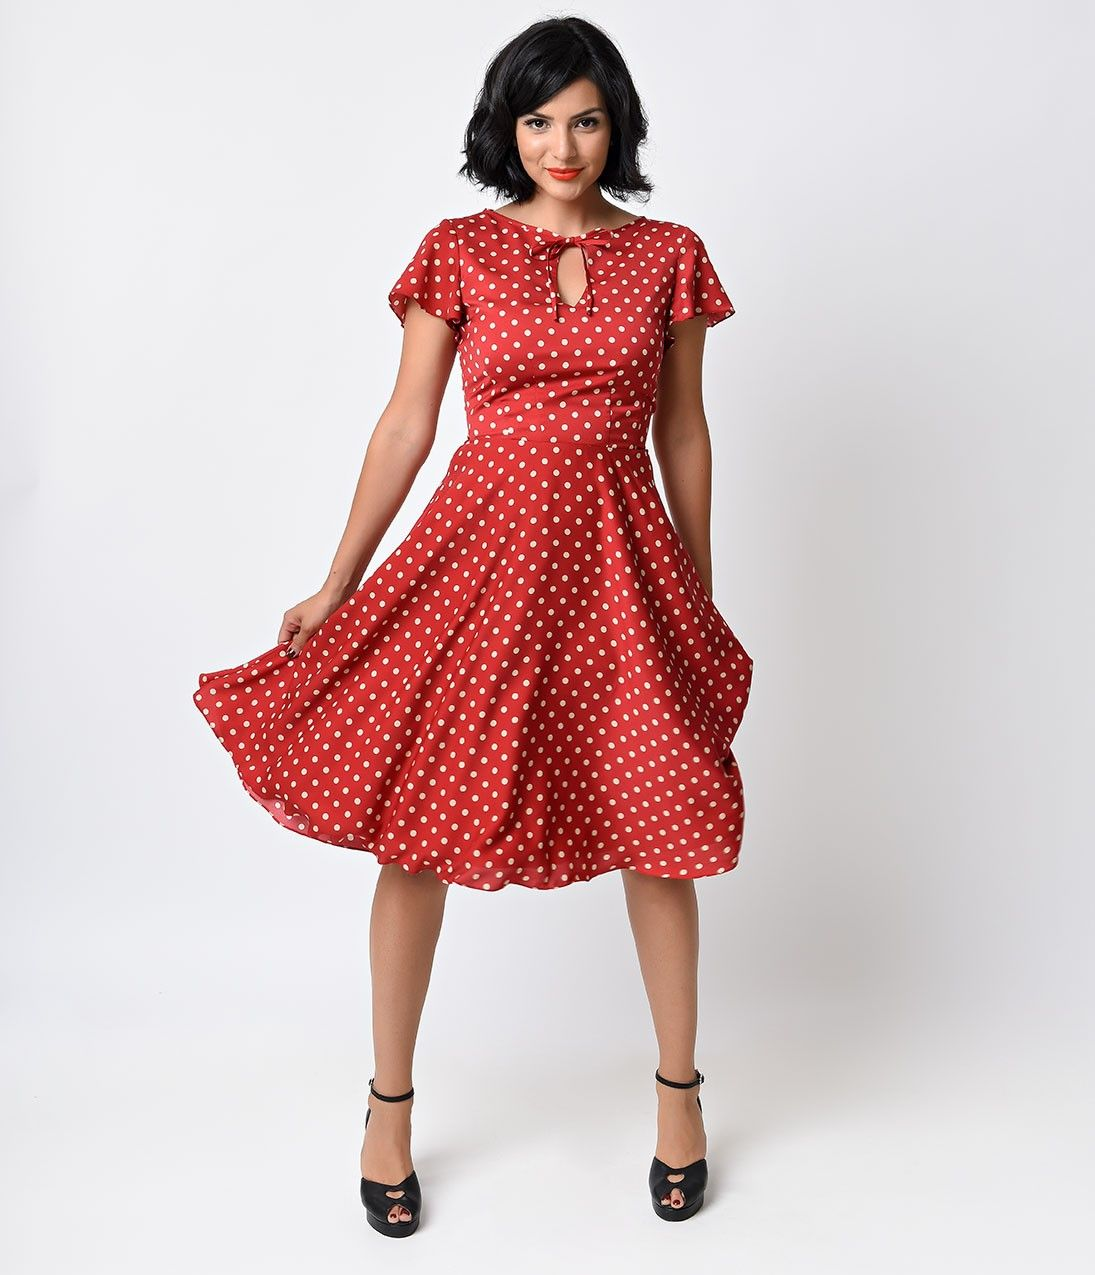 Preorder Unique Vintage 1940s Style Red Ivory Dot Formosa Swing Dress Vintage Swing Dress White Vintage Dress Unique Vintage Dresses [ 1275 x 1095 Pixel ]